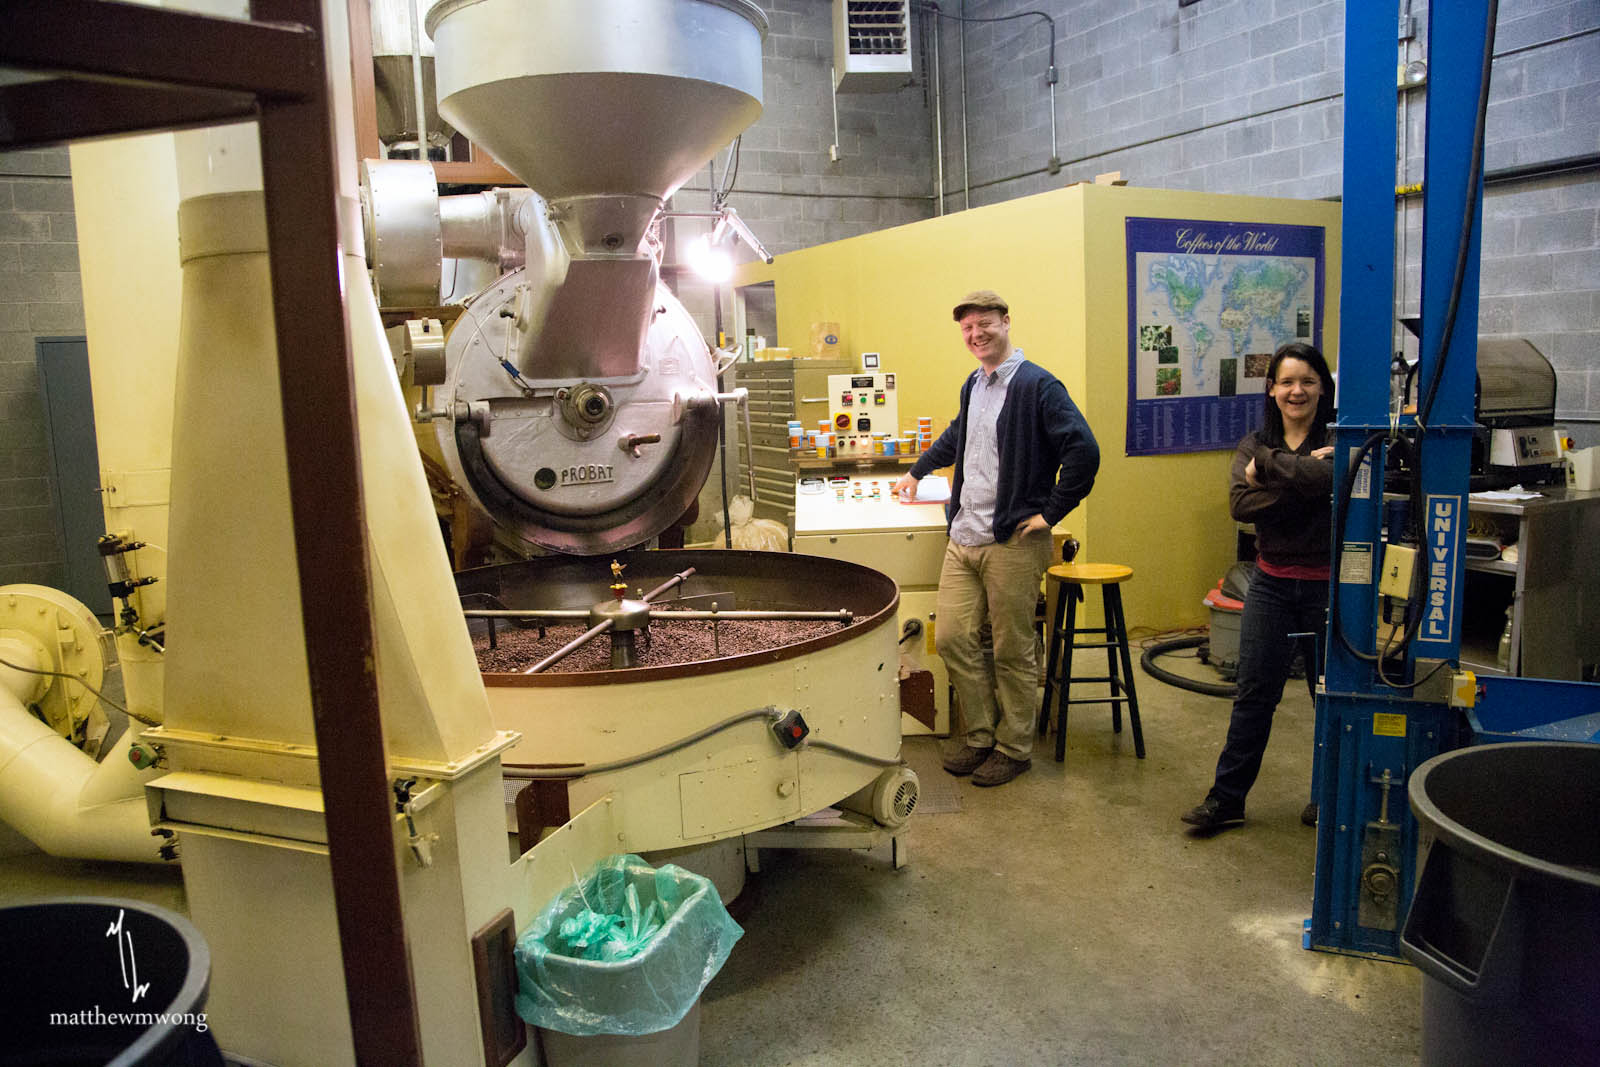 Roasting, having fun using the 90-kilo Probat roaster from the 1960s. What a beast!